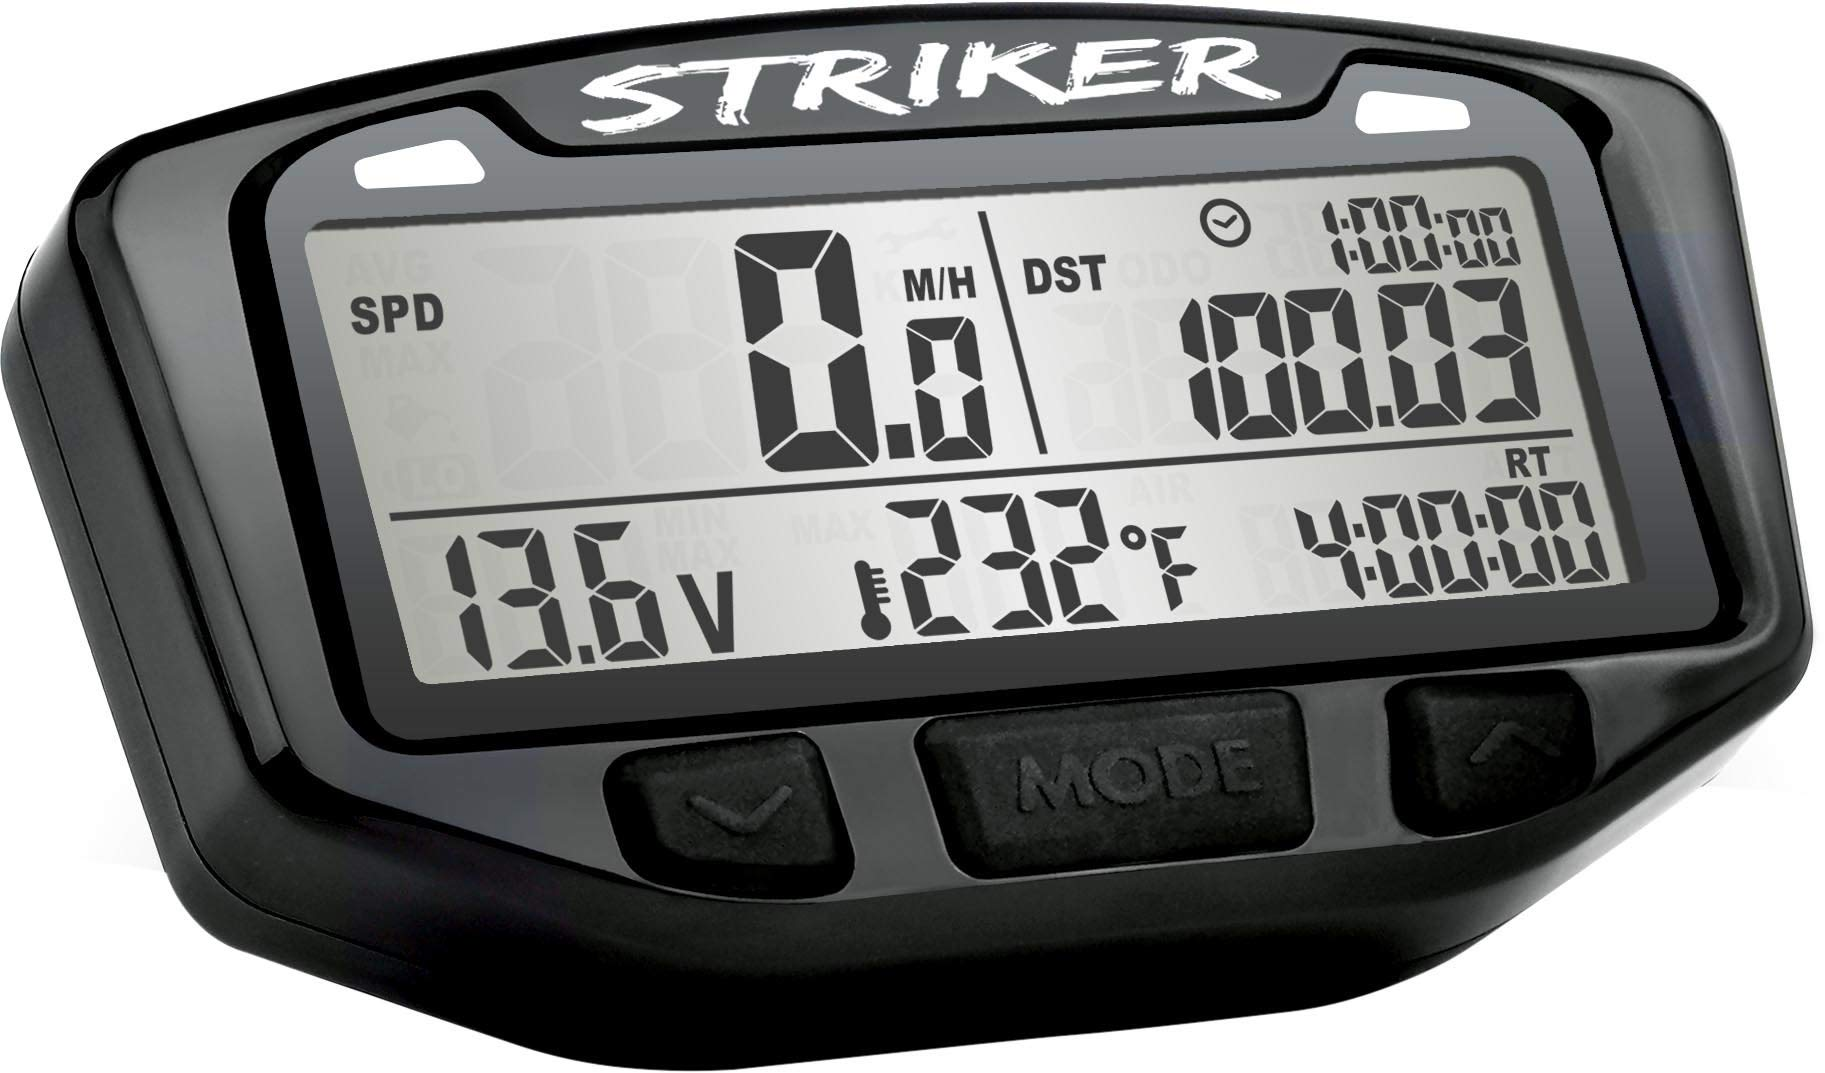 Trail Tech 712-119 Black Striker Speedometer Digital Gauge Kit with Volt Meter by Trail Tech